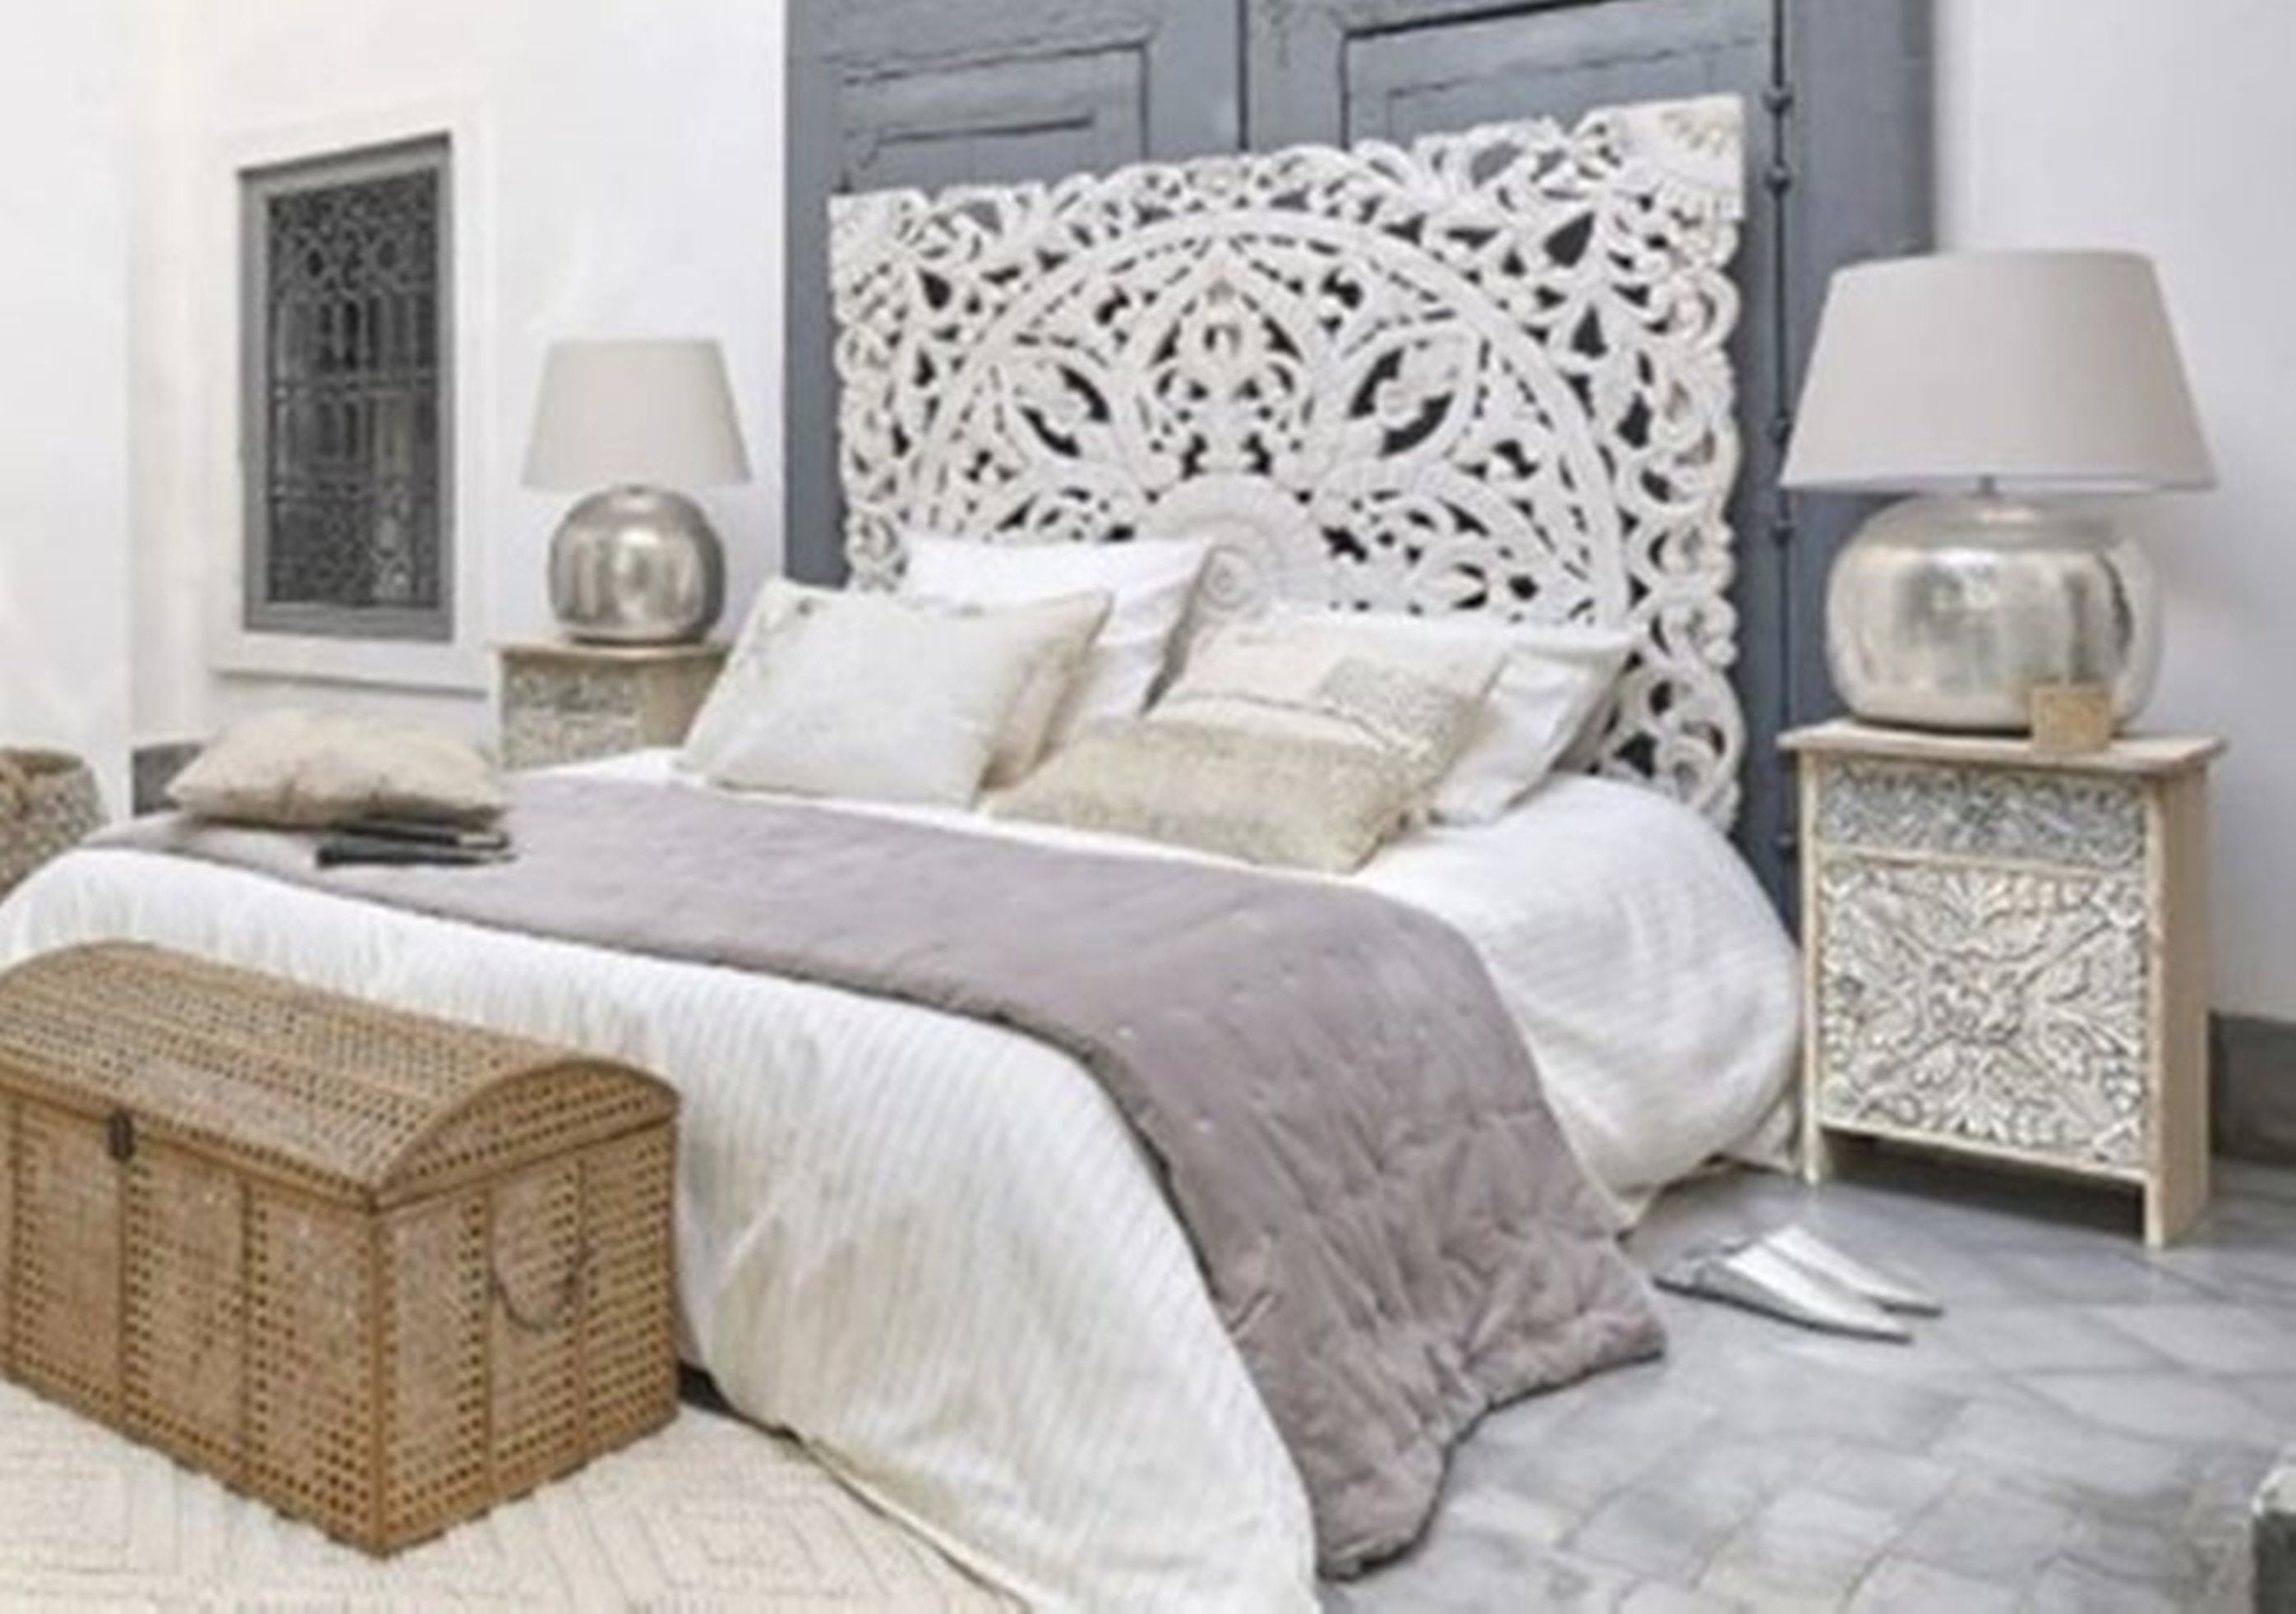 62 White Washed Queen Size Carved Wood Bed Headboards Etsy